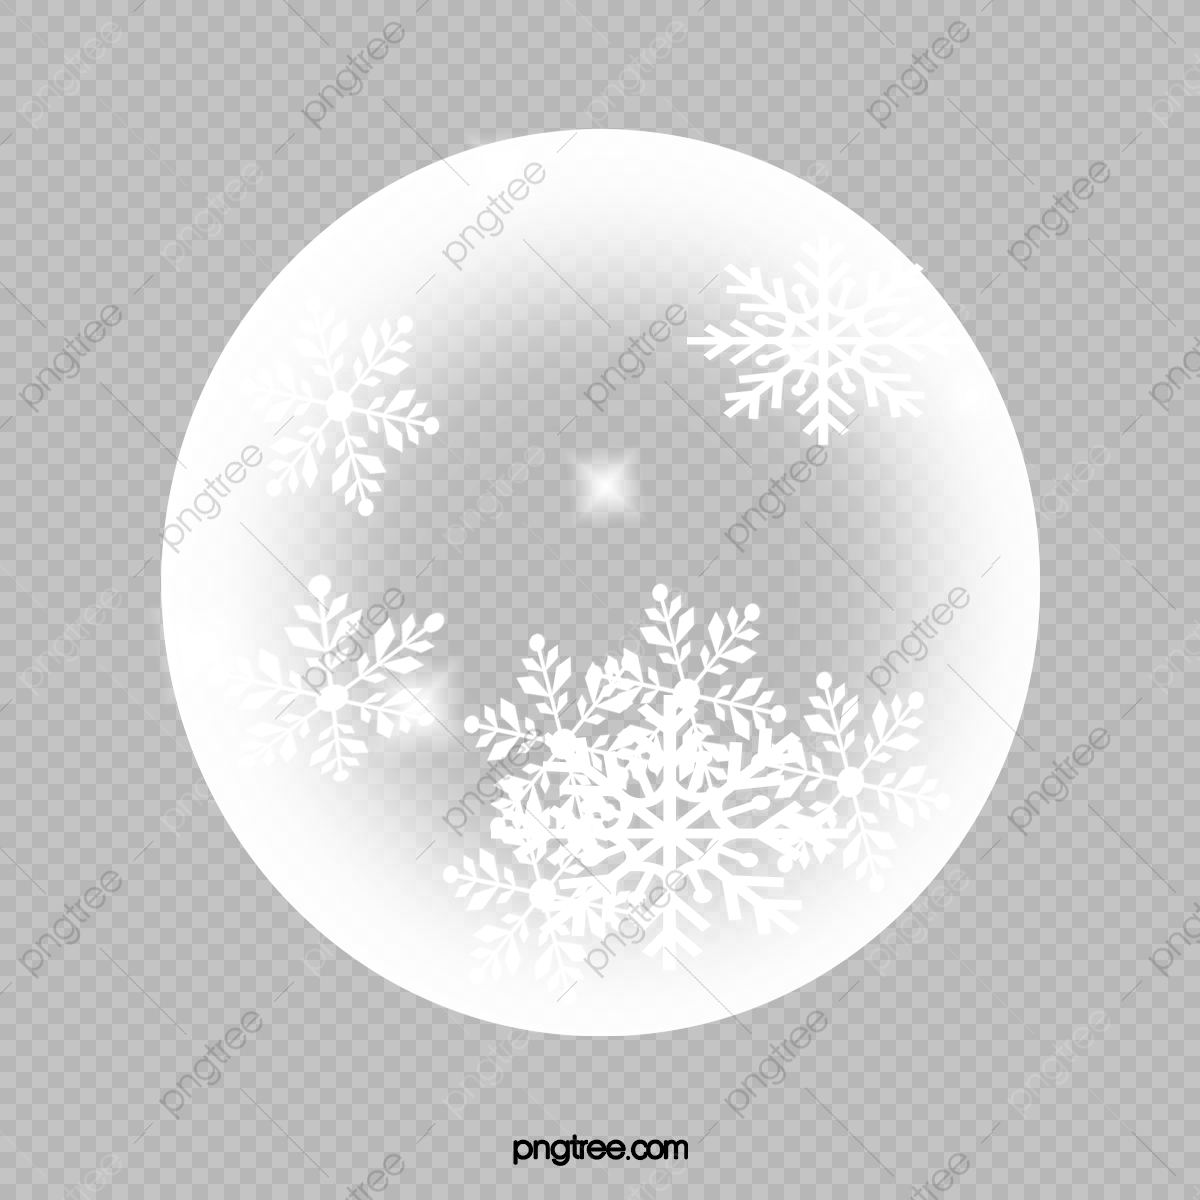 Full Moon Moon Clipart White Winter Png Transparent